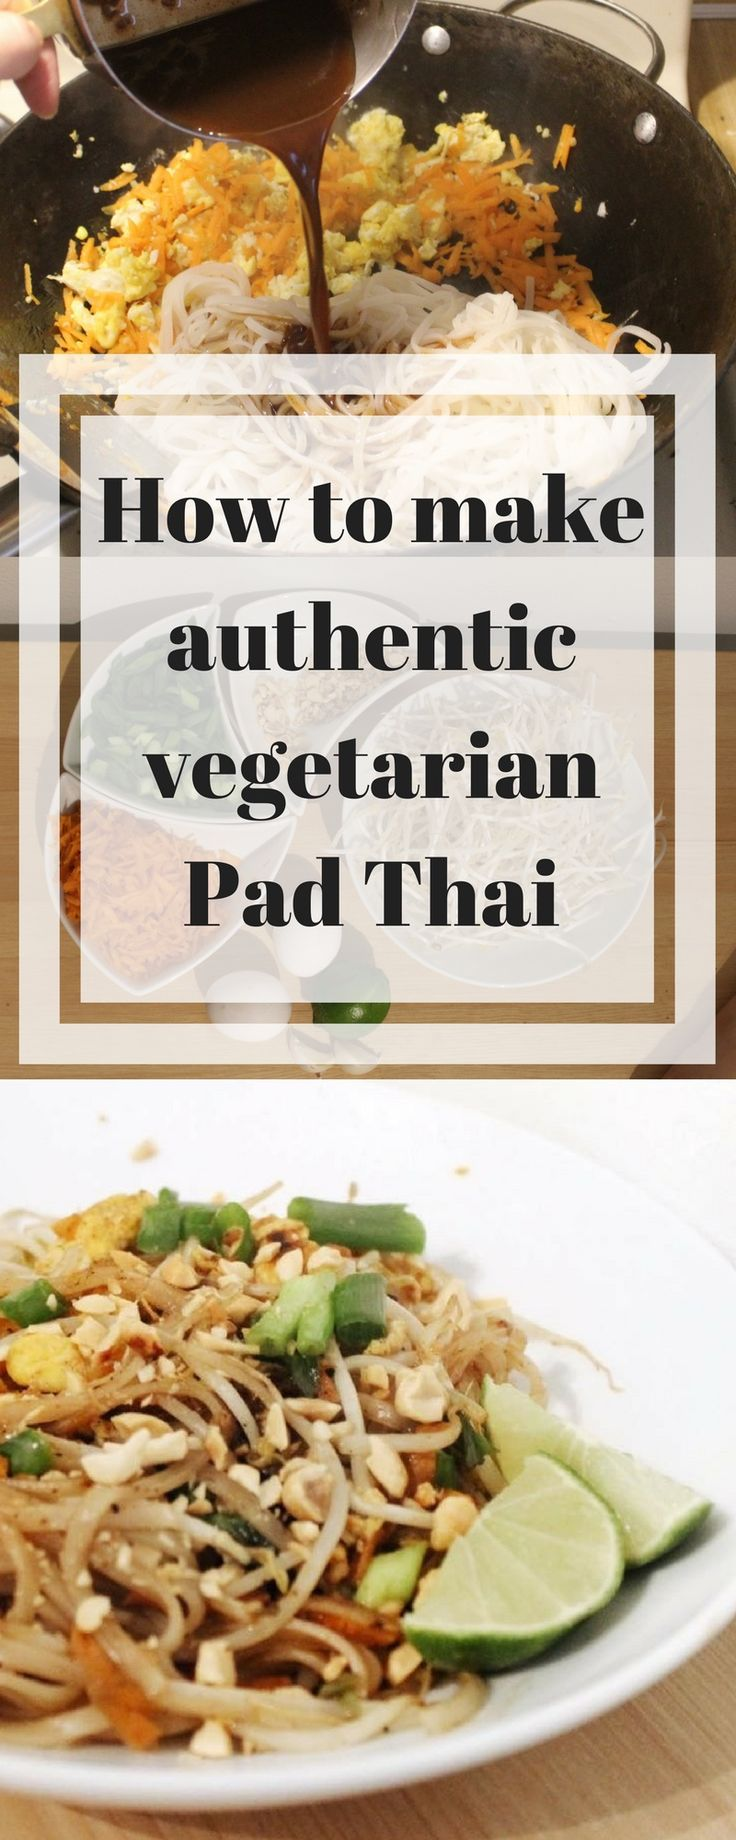 How to make authentic Pad Thai at home // Learn to make Vegetarian Pad Thai and the sauce // Easy Pad Thai at home // How to make Thai food like at a restaurant and eat authentic Pad Thai with fresh ingredients! // #PadThai #blueandhazel #vegetarianthaifood #homecookedmeal